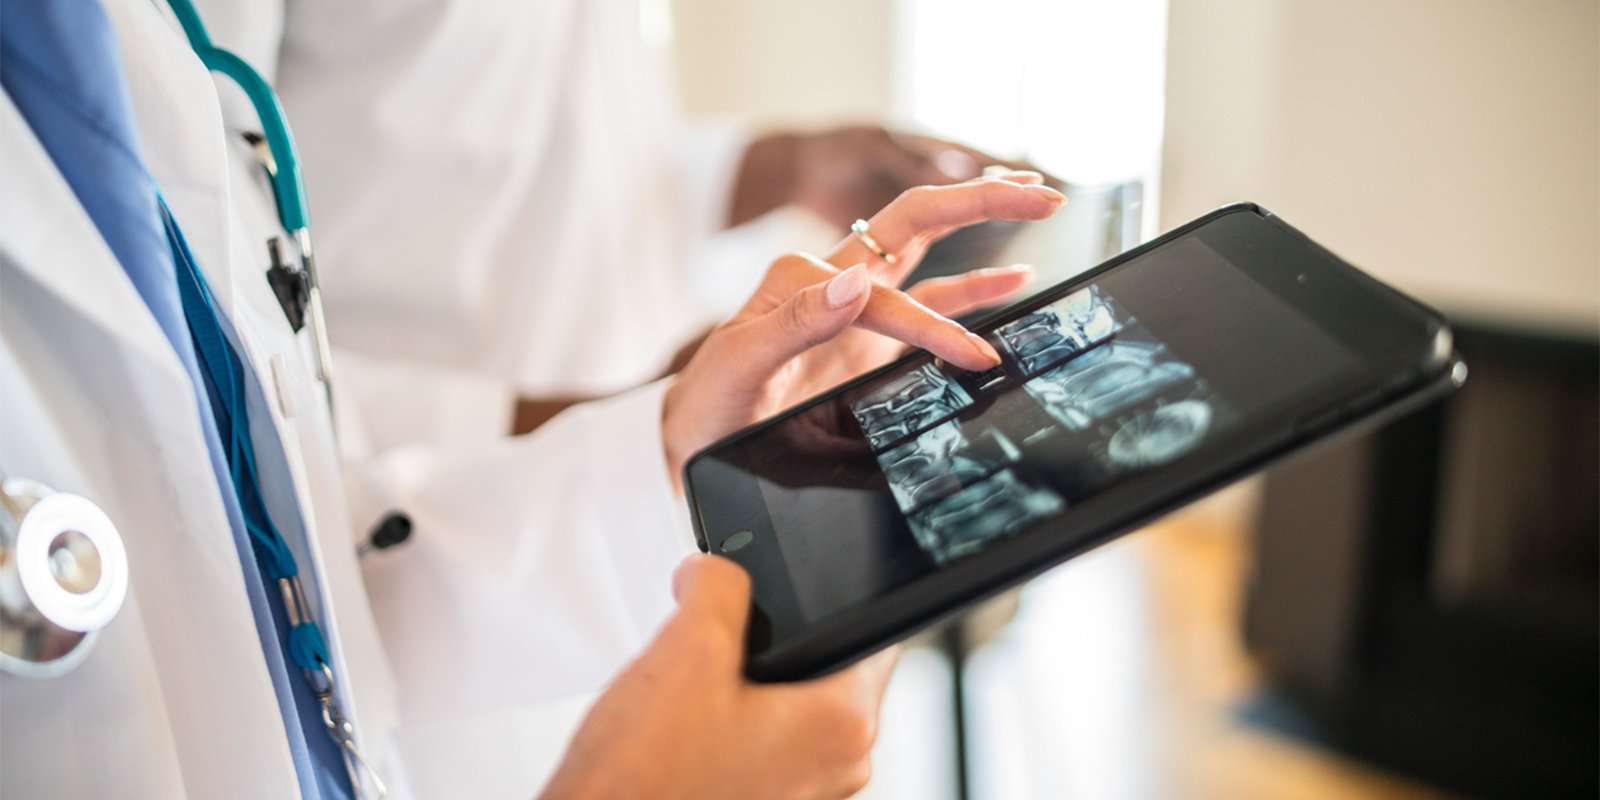 How to Use iPad in the Healthcare Industry